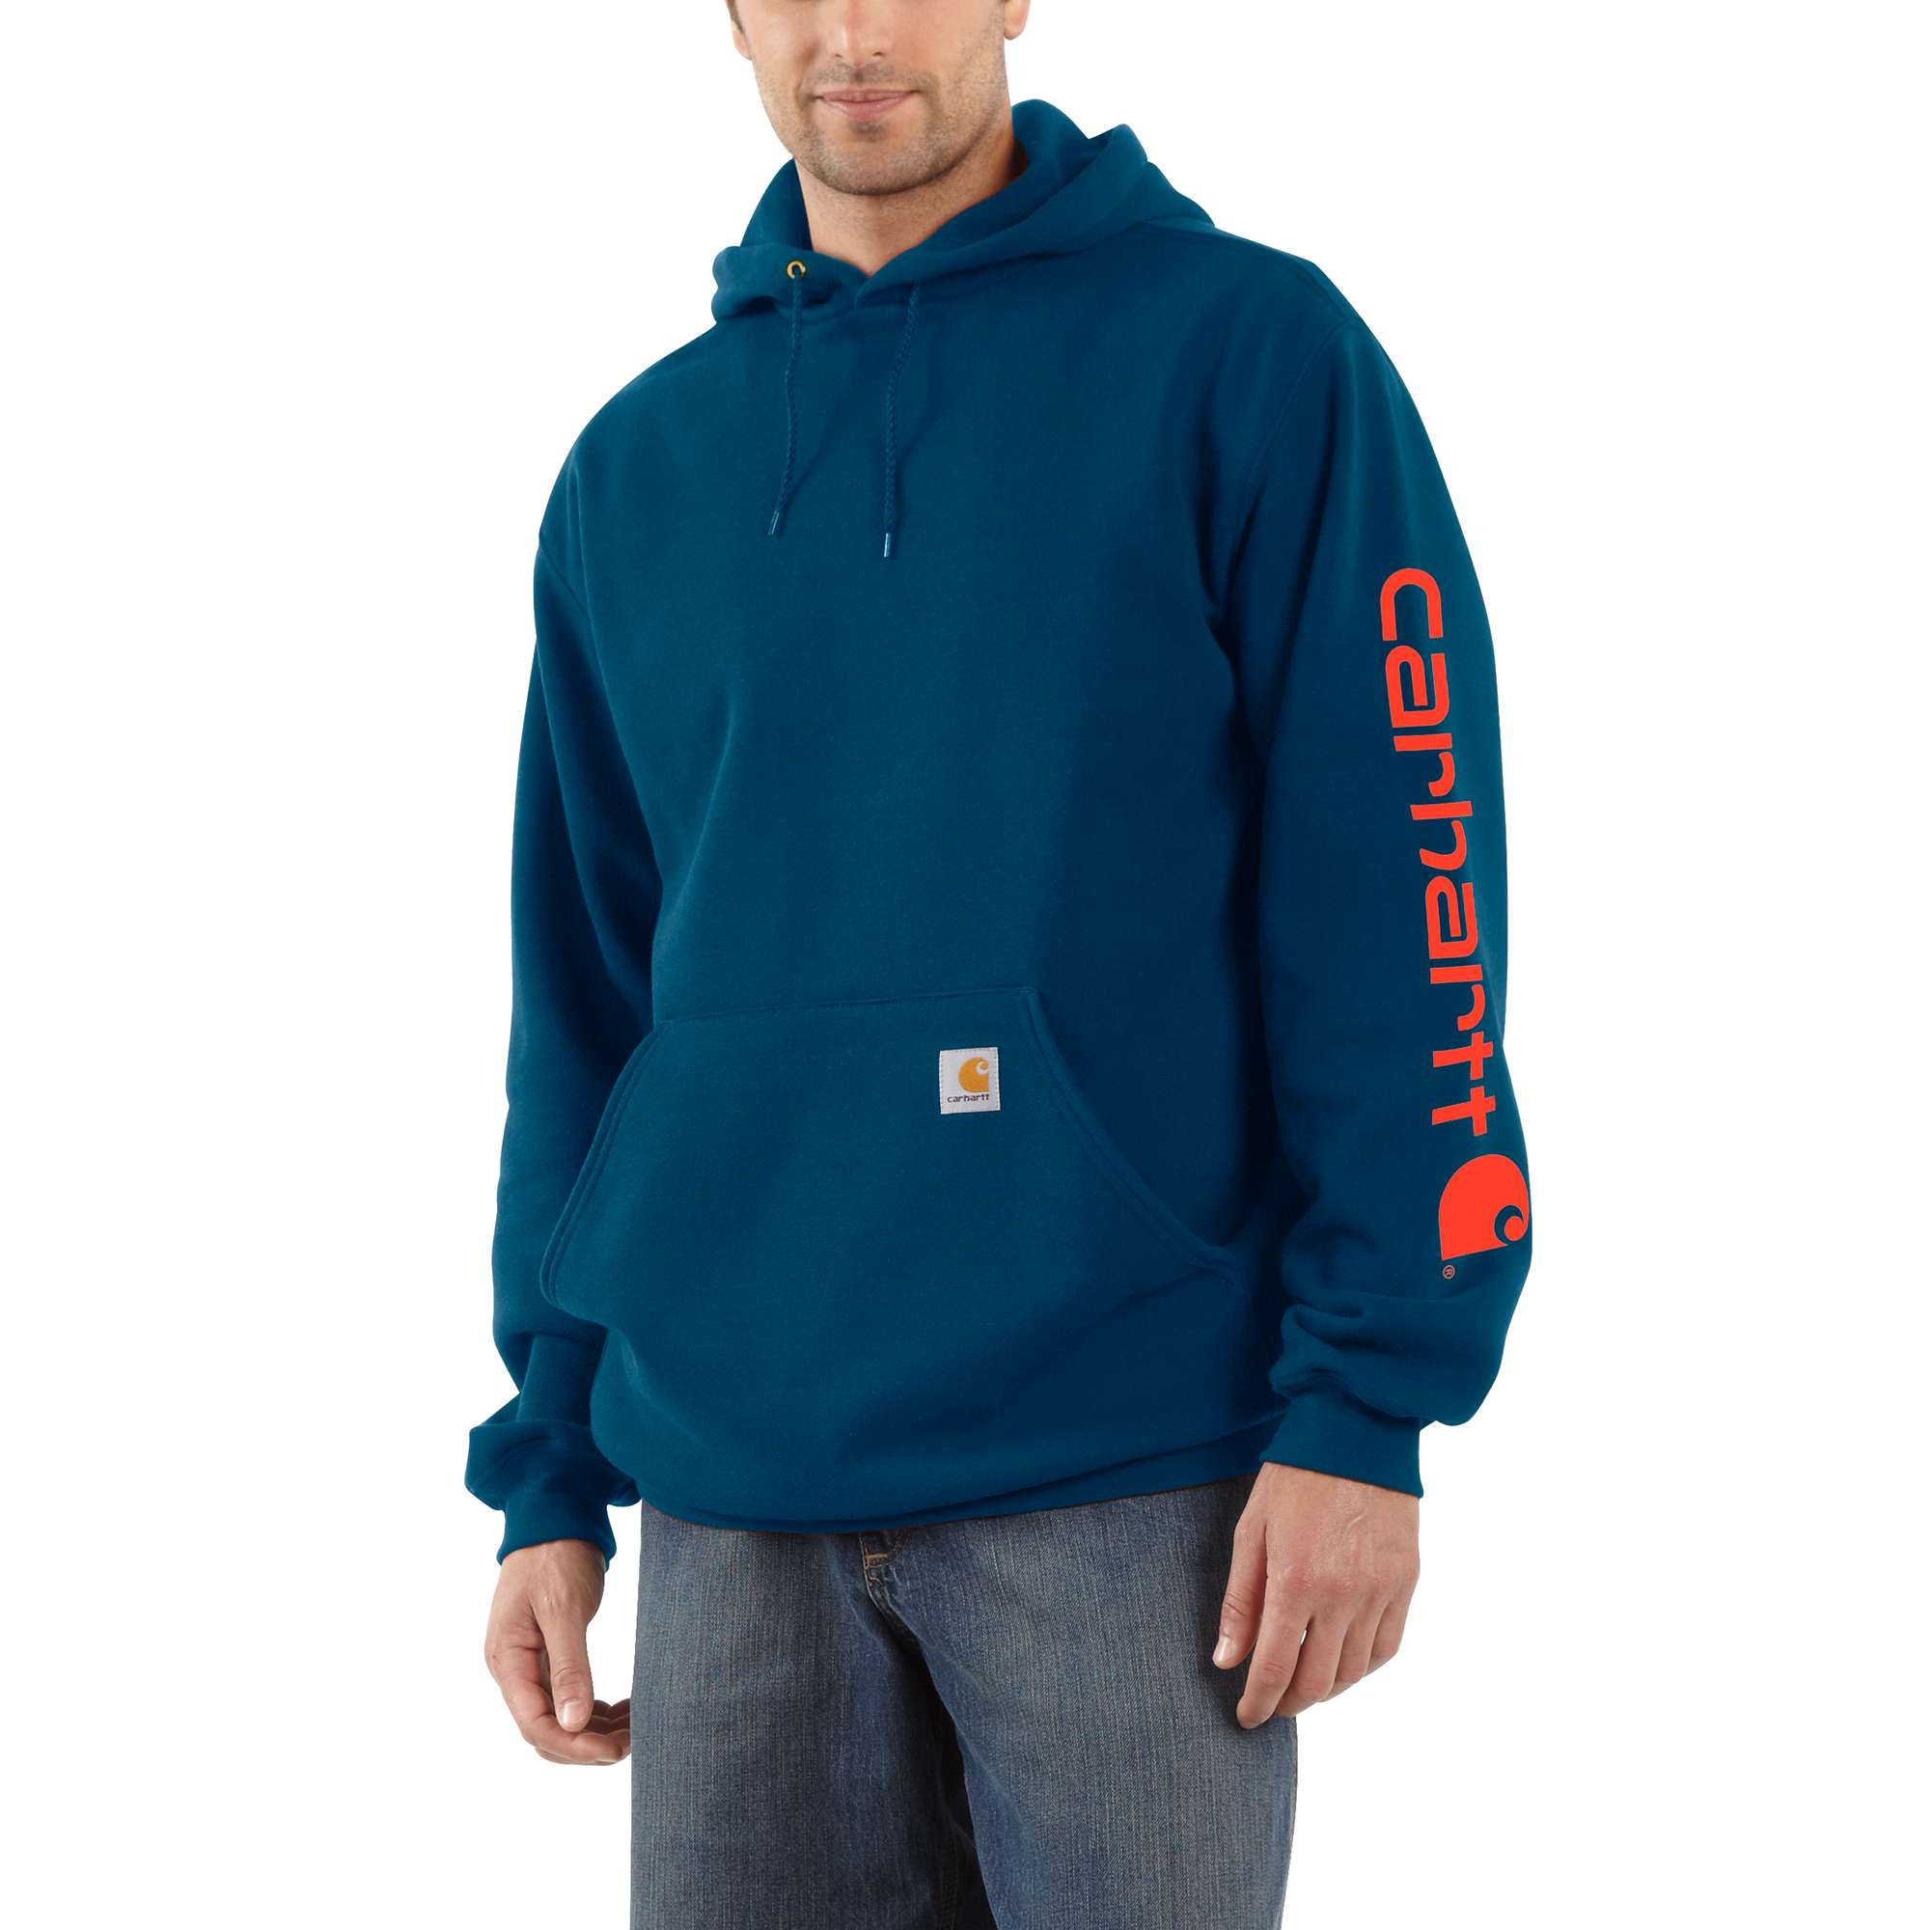 Men's Midweight Signature Logo Sleeve Hooded Sweat, Blue, swatch